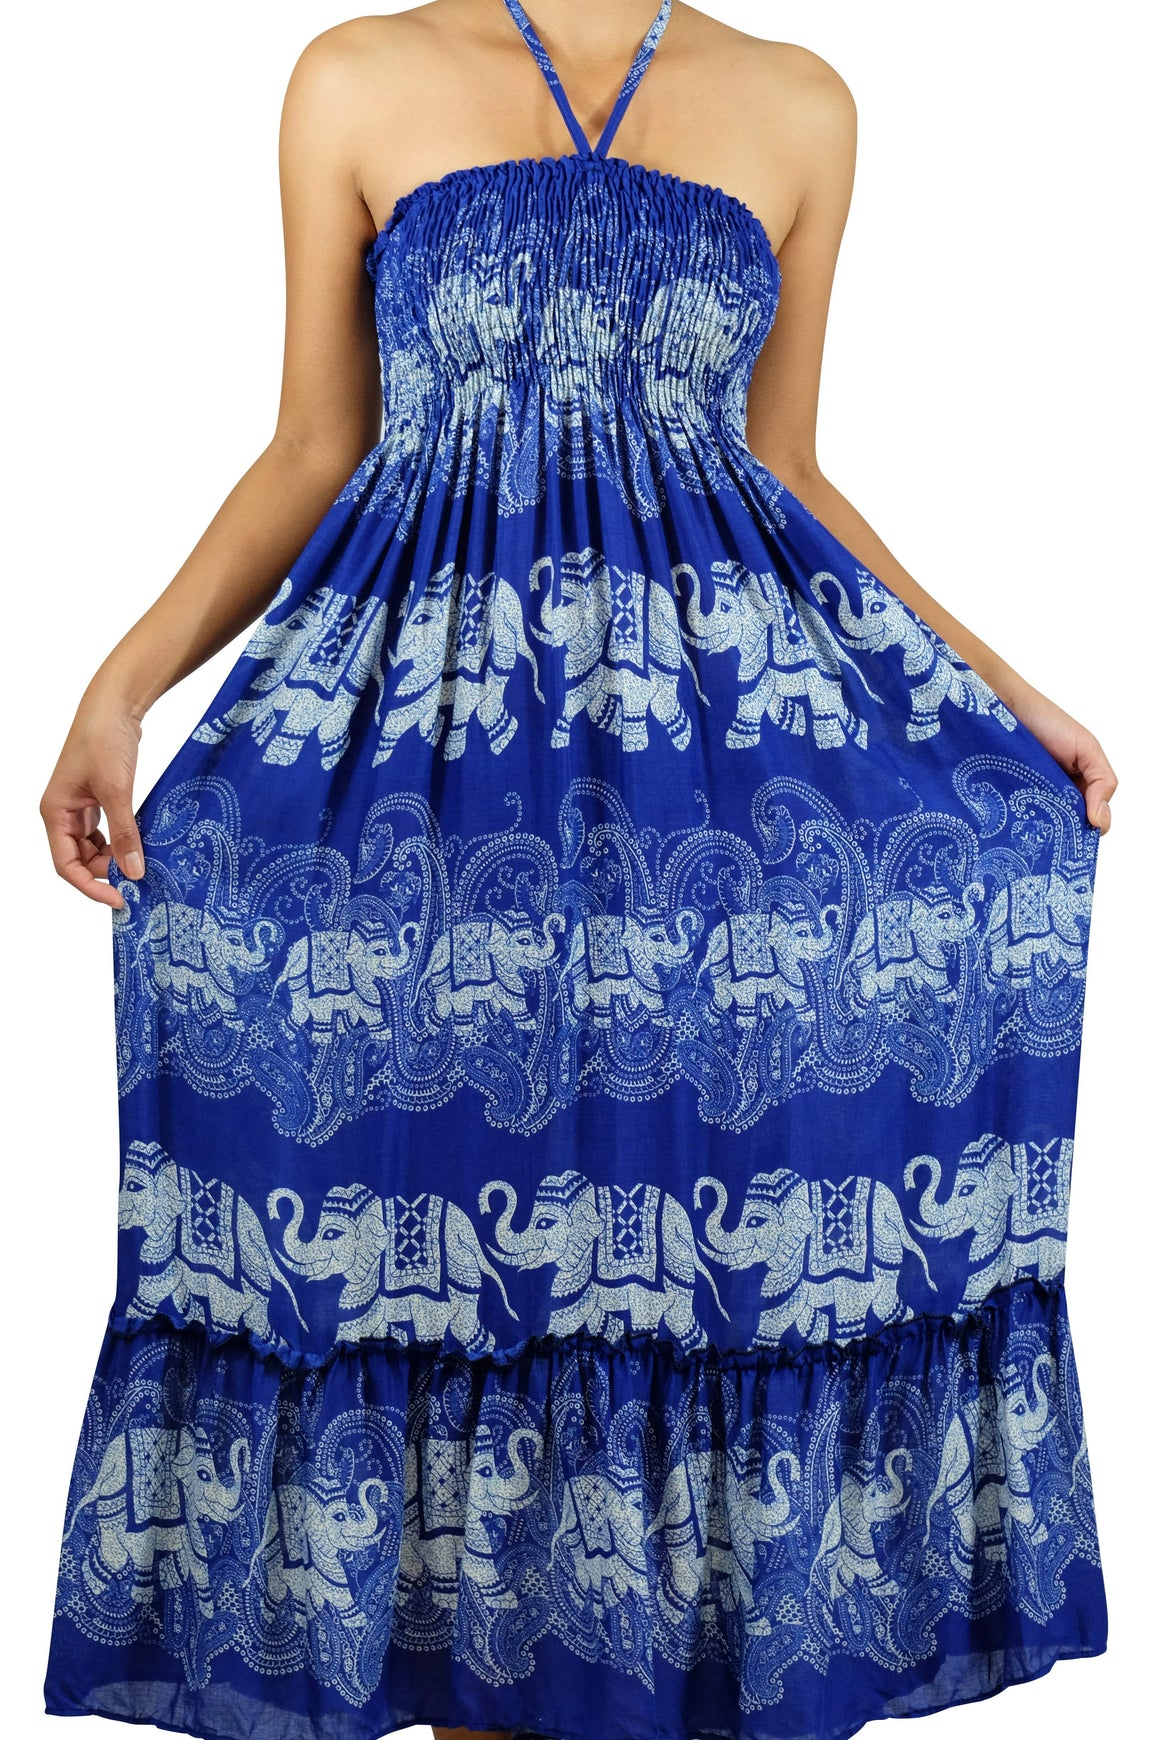 Elephant Shirt Store Dress Laithai Halter Elephant Dress Blue